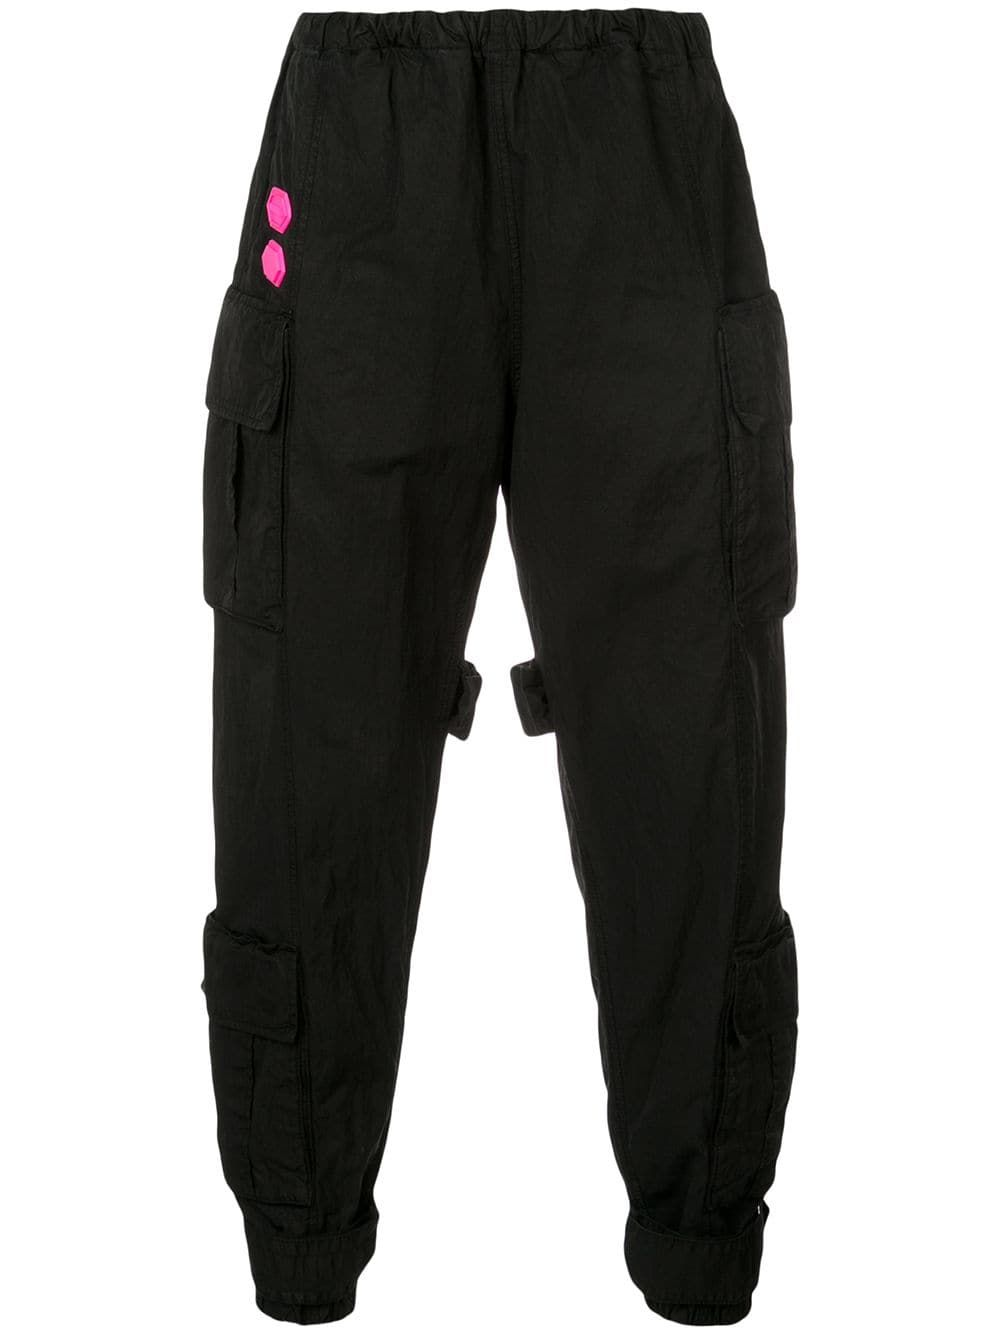 e217e8434e71 OFF-WHITE OFF-WHITE TAPERED CARGO TROUSERS - BLACK.  off-white  cloth